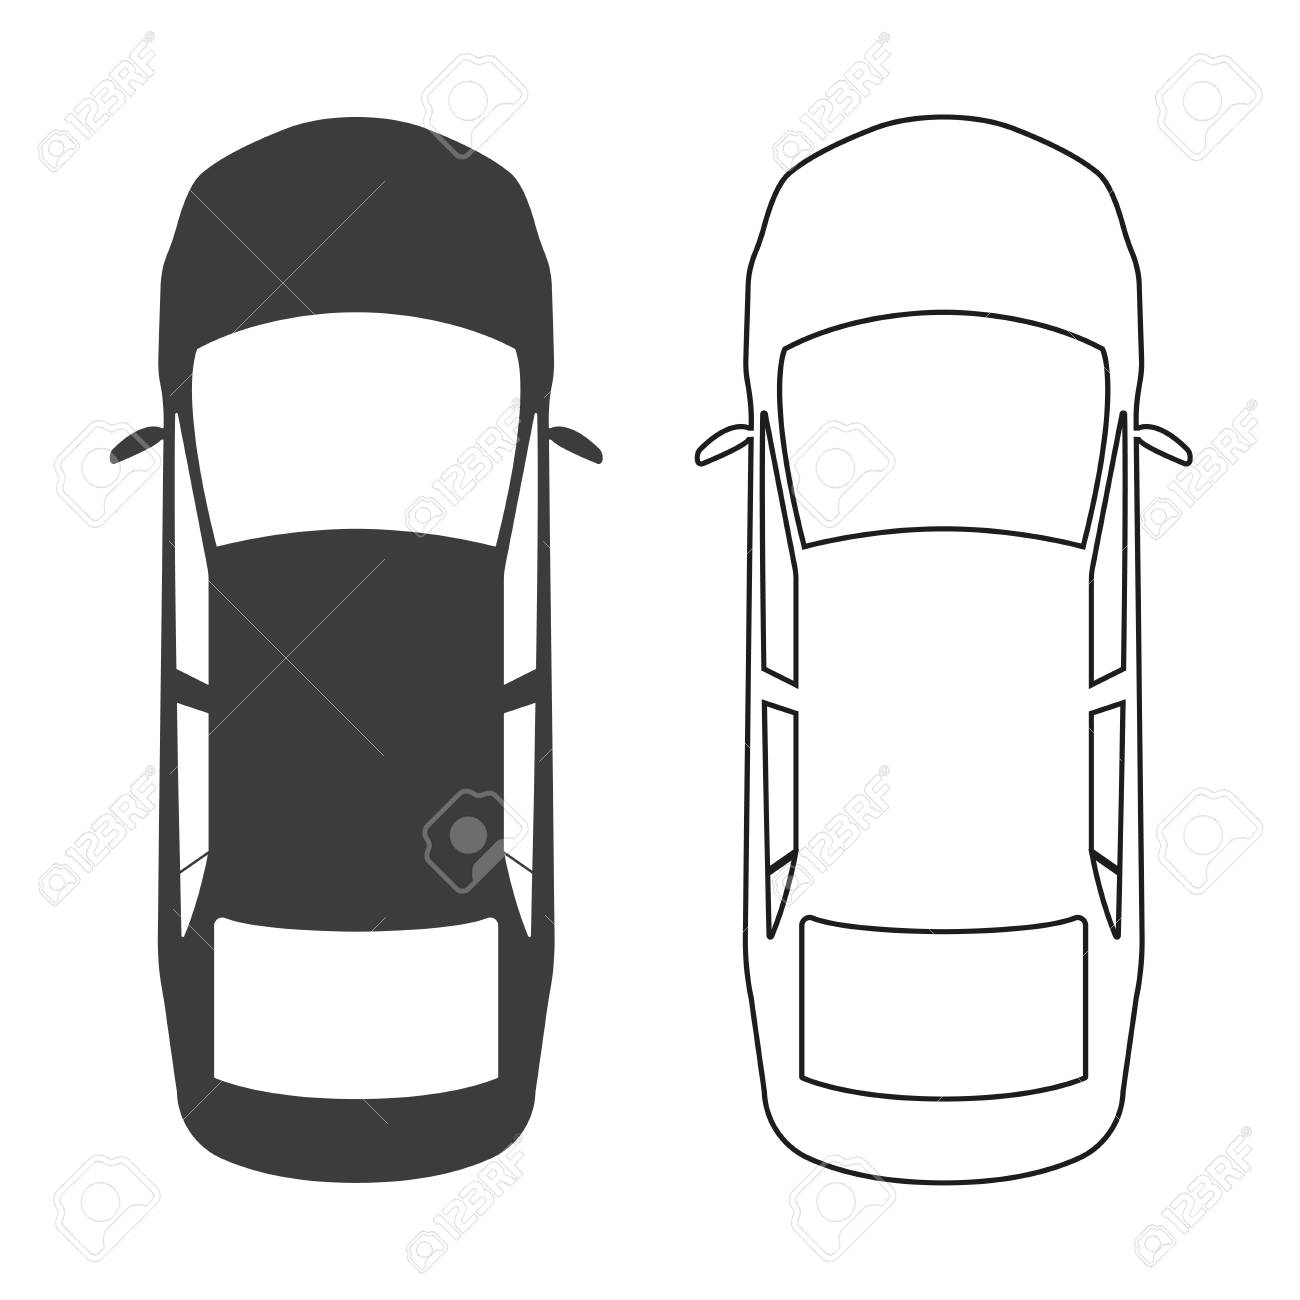 Car icon. Top view. Vector illustration..